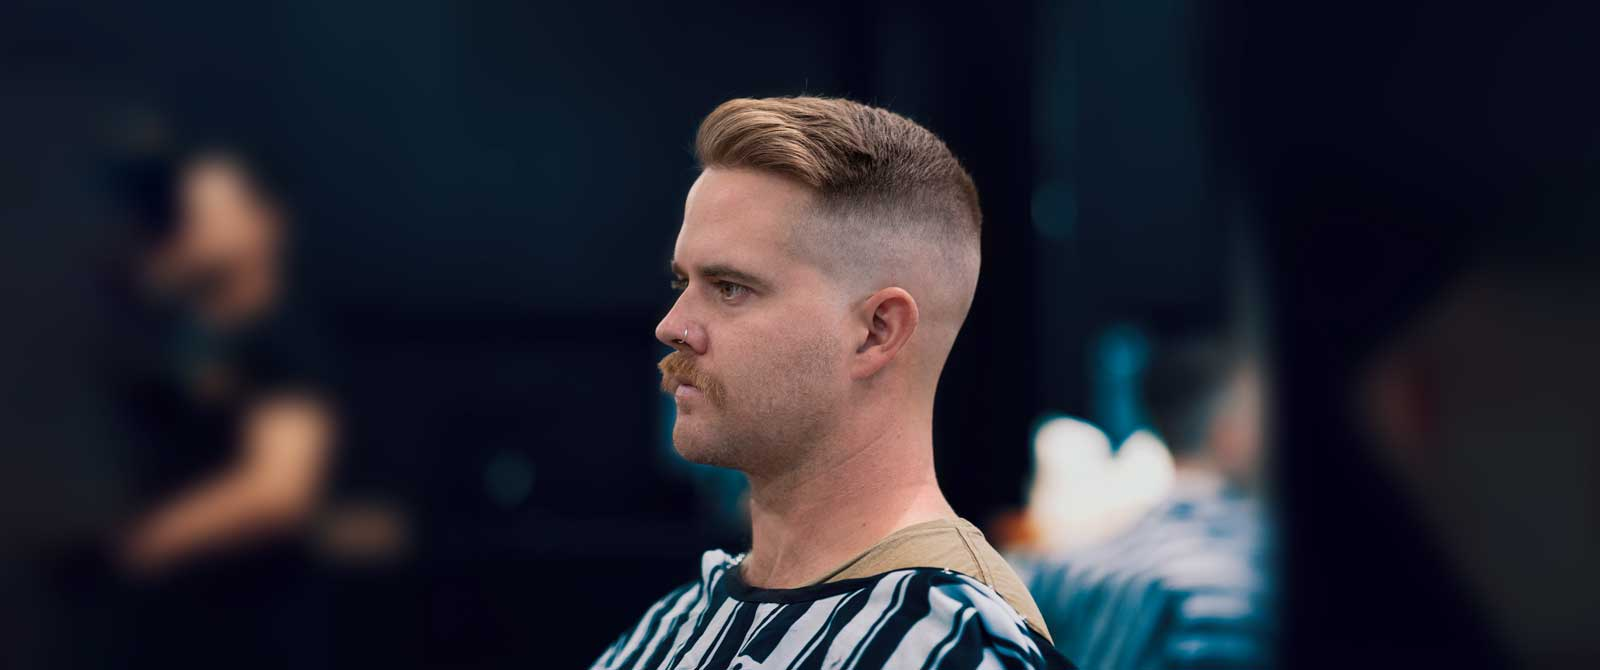 Trending Hairstyles - Quiff High Skin Fade